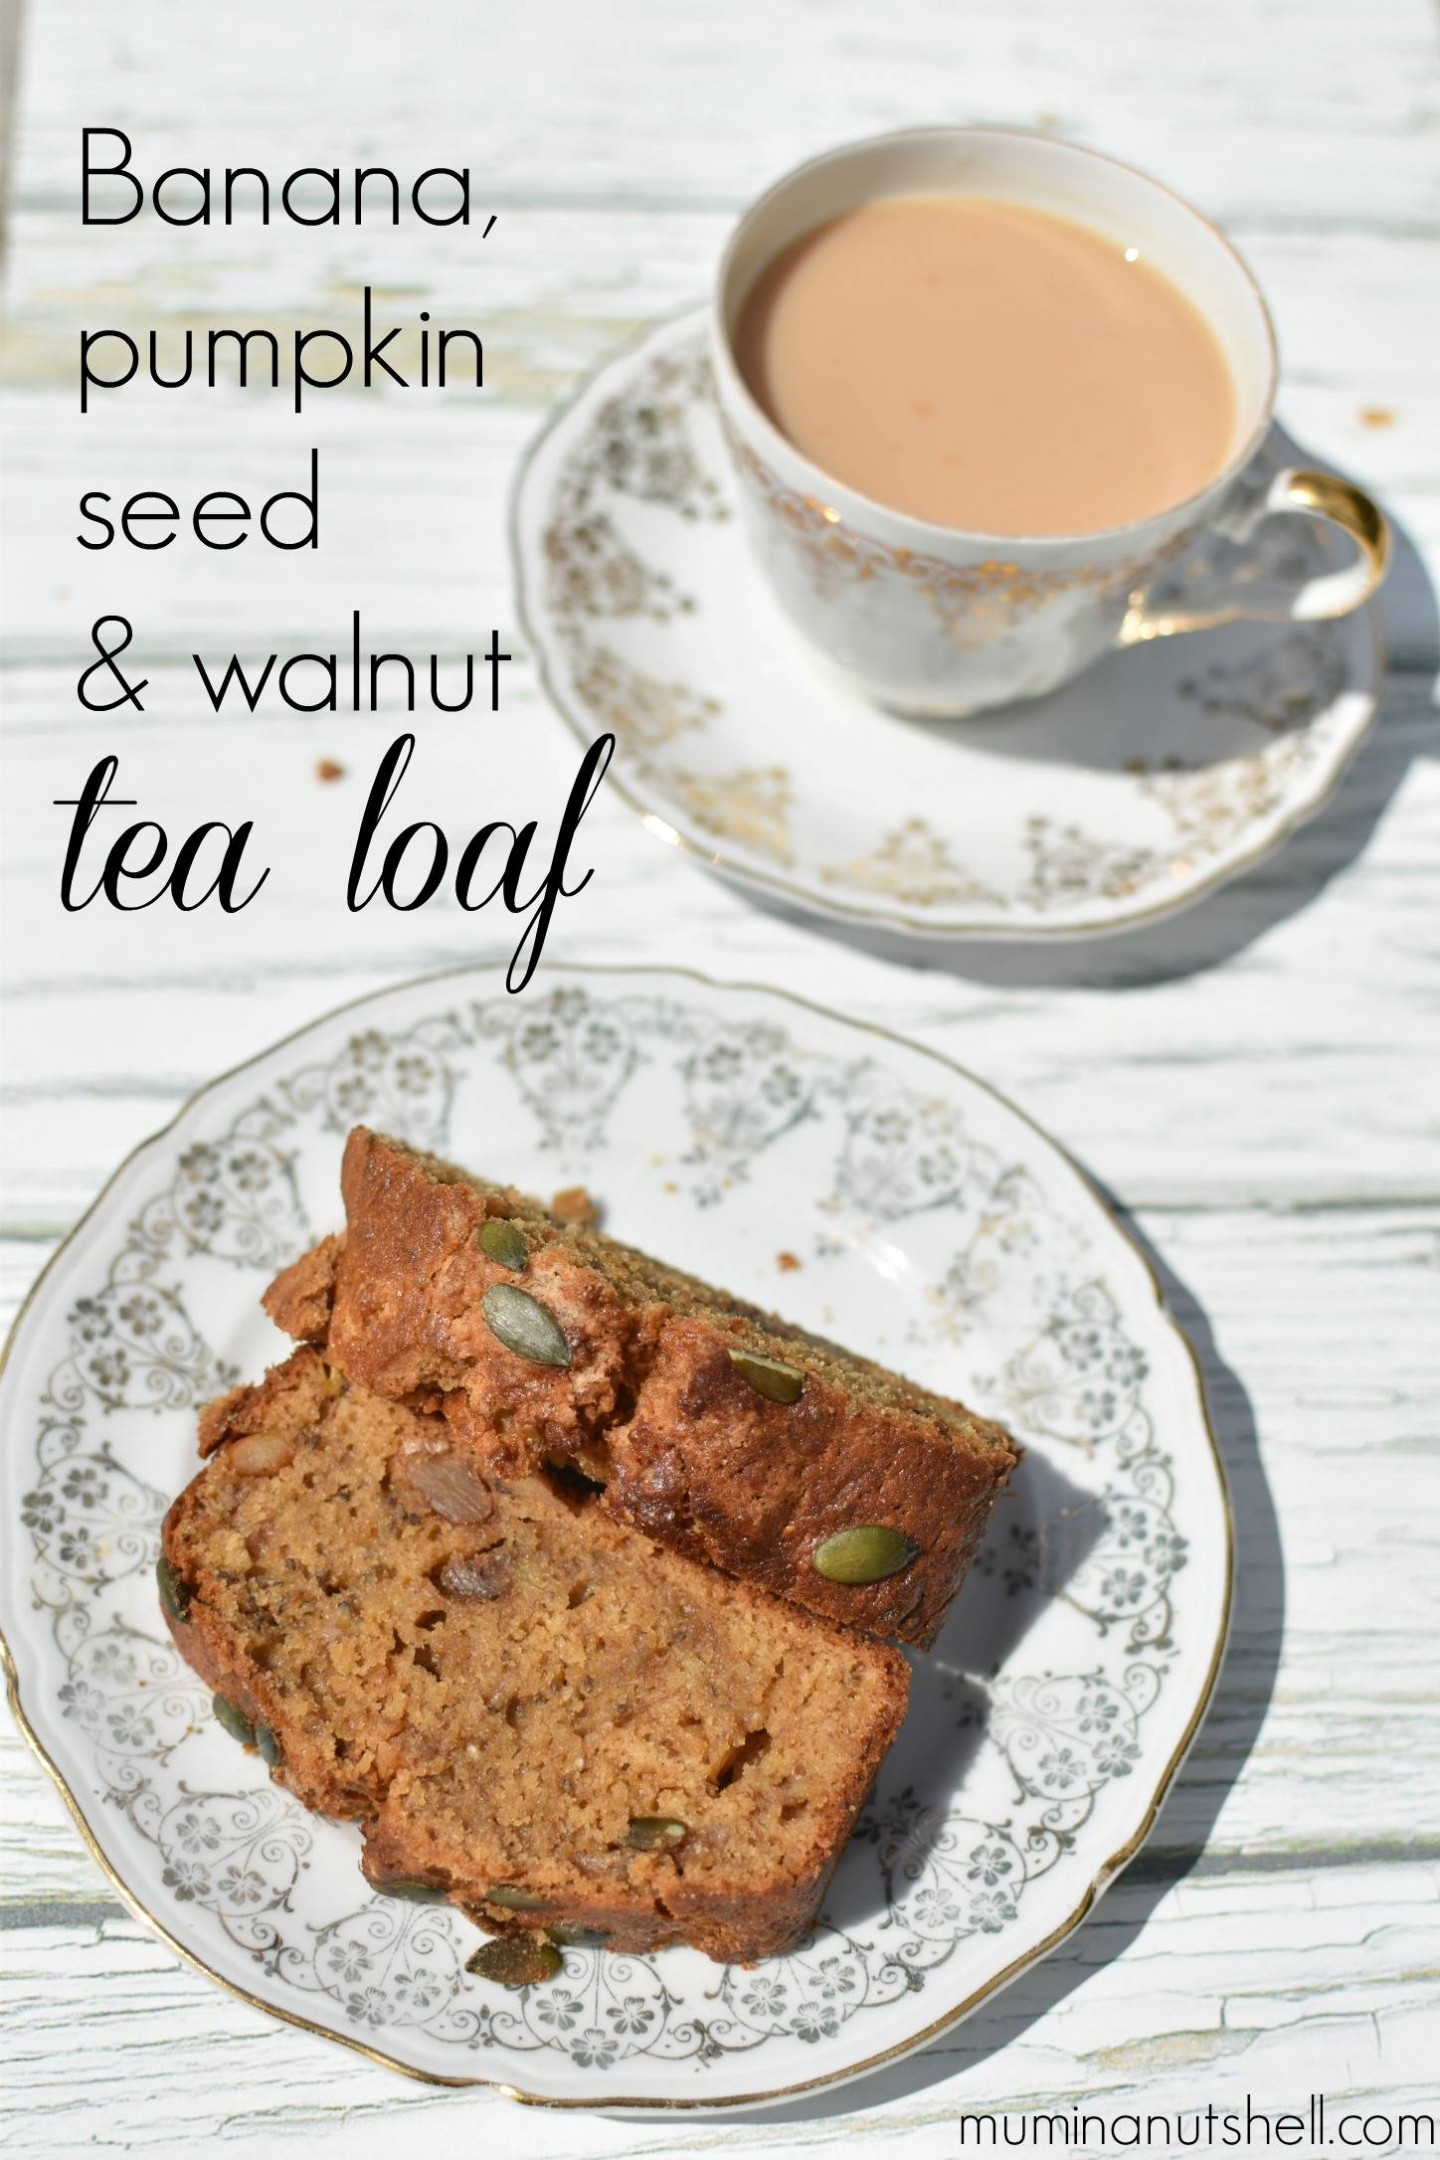 a tasty, power packed treat, this banana, pumpkin seed and walnut tea loaf is perfect for combatting exam stress and giving you an energy boost